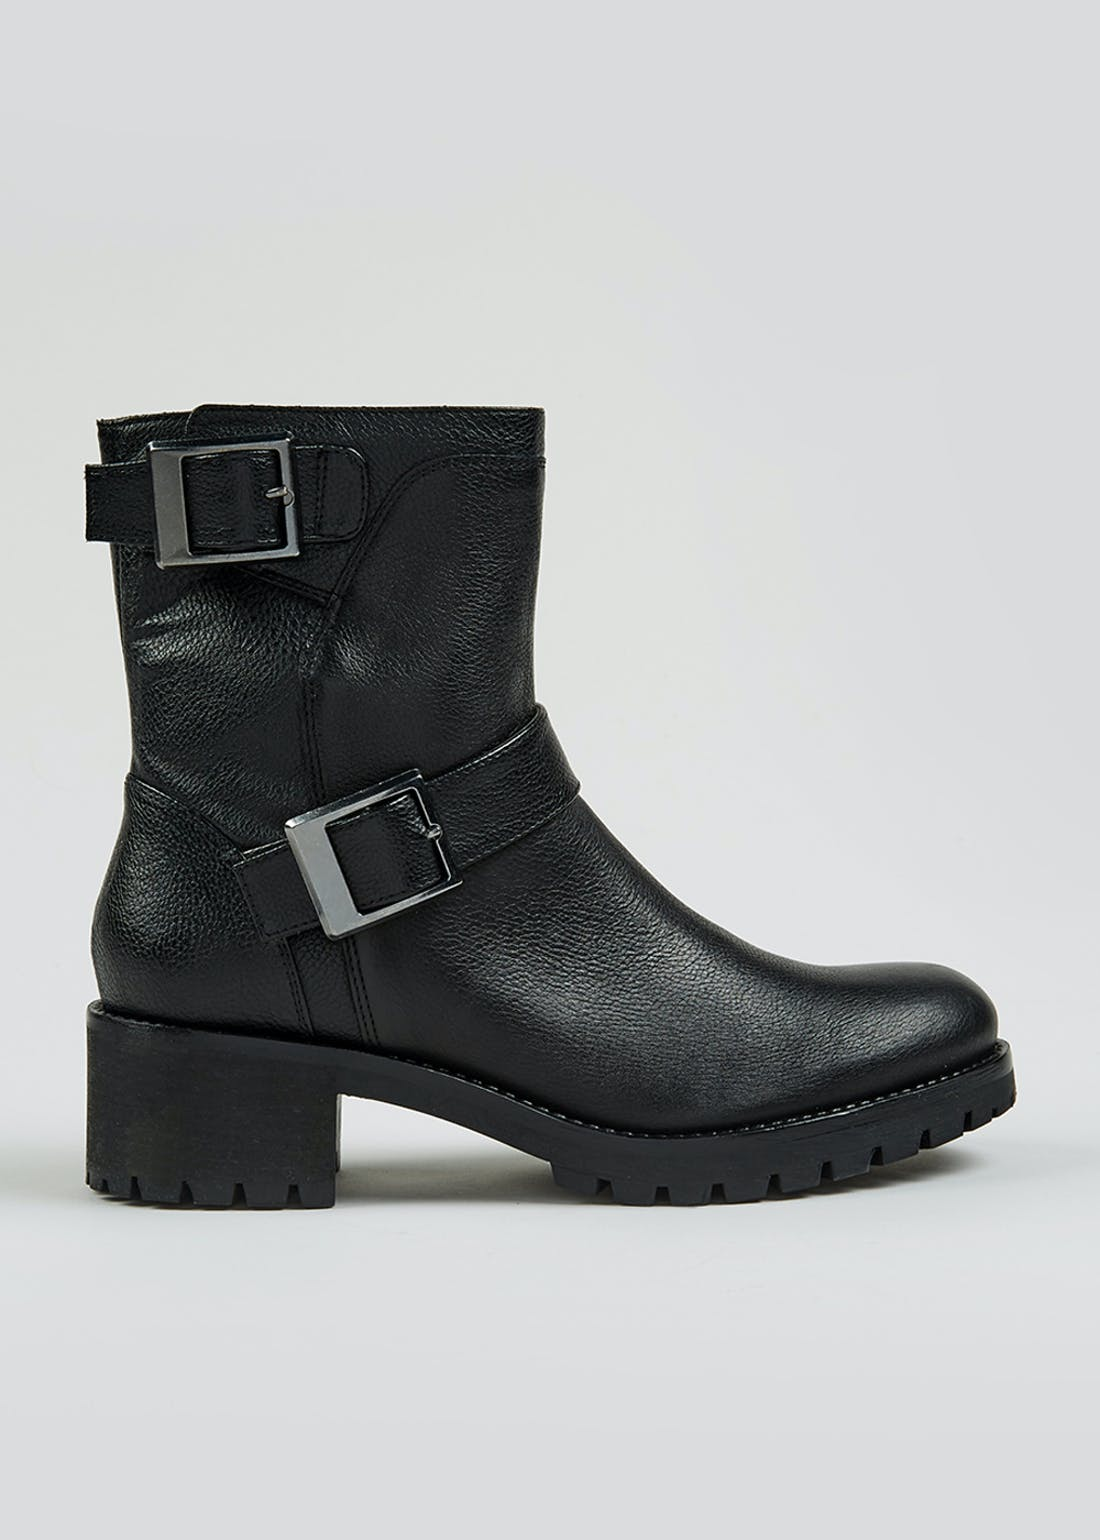 Soleflex Black Real Leather Biker Boots